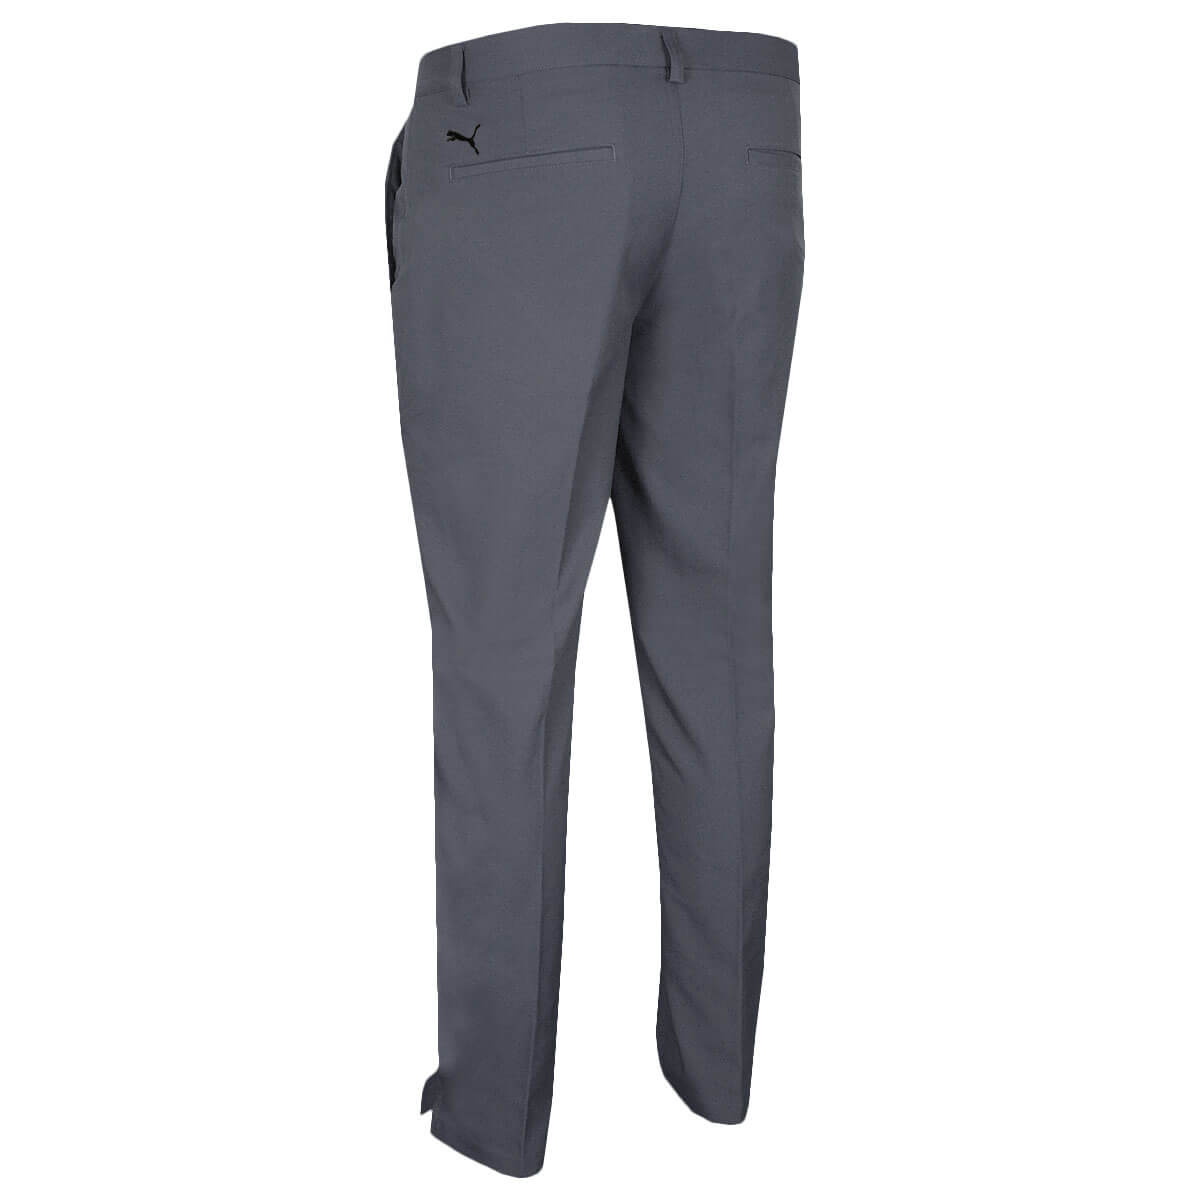 Puma-Golf-Mens-Stretch-Pounce-Golf-Stretch-Wicking-Trousers-45-OFF-RRP thumbnail 12